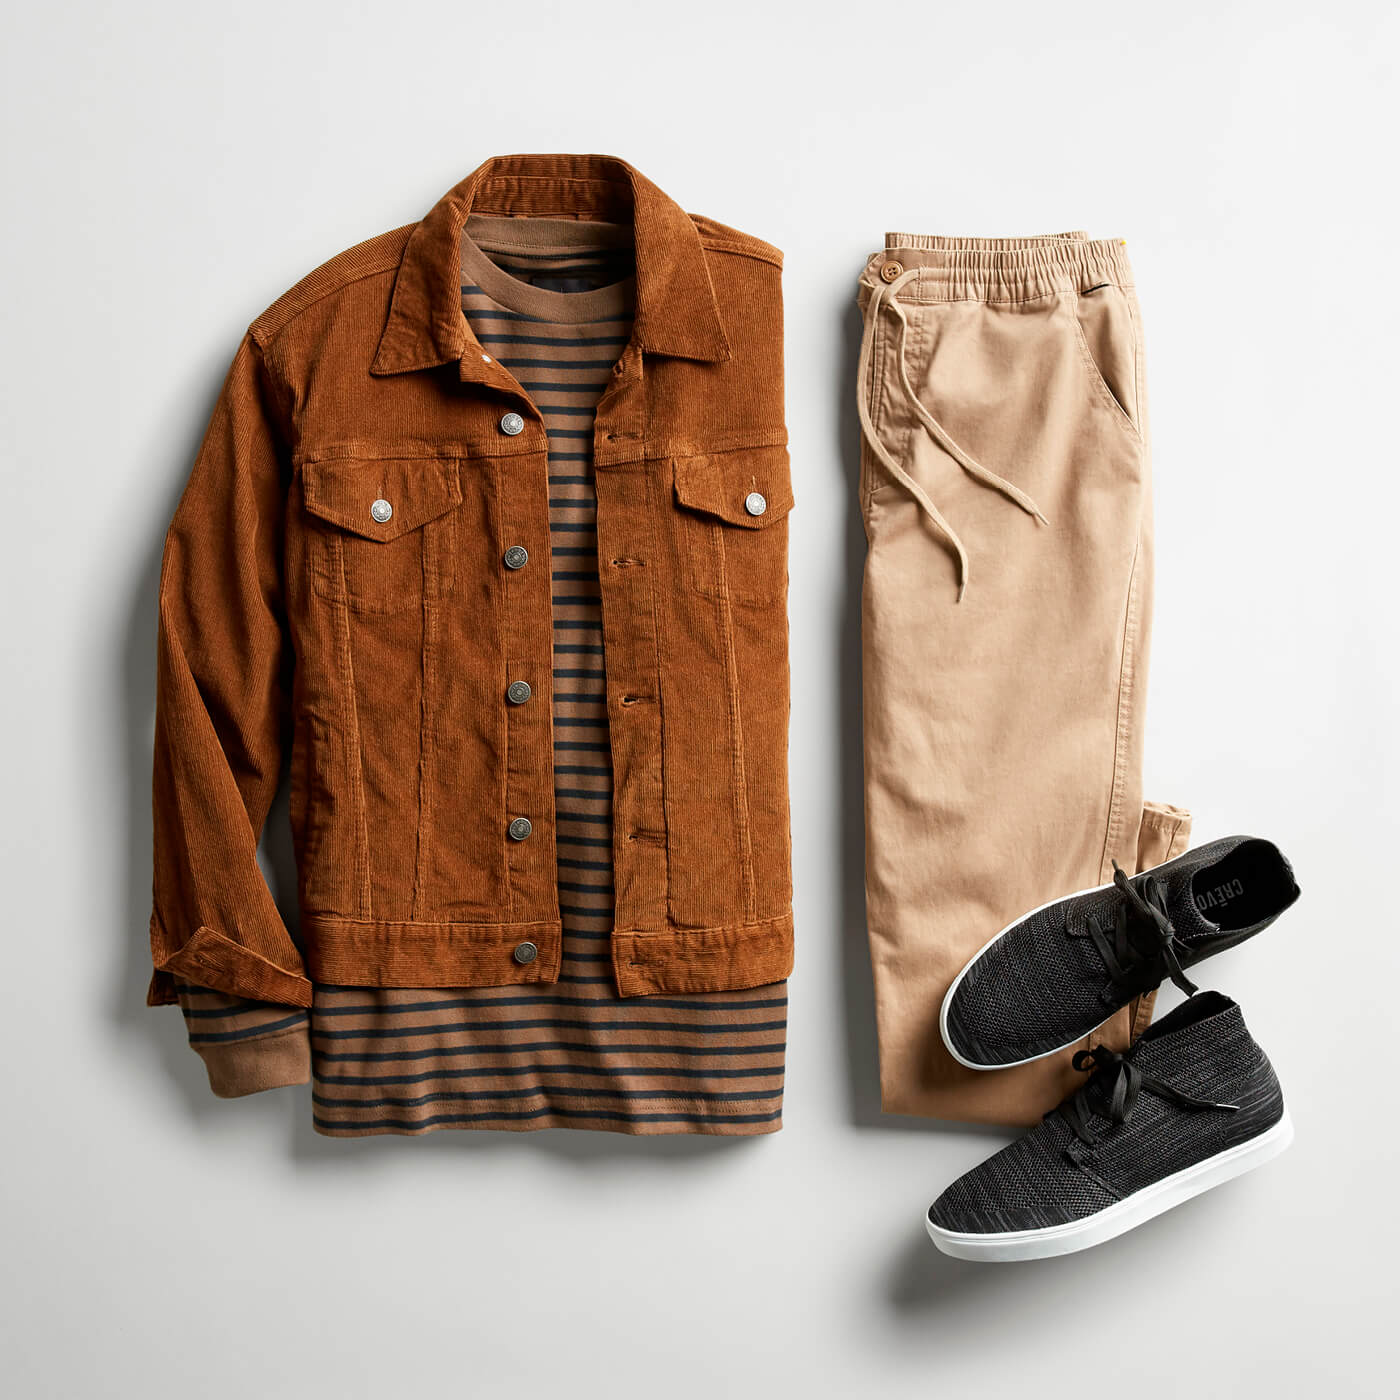 tan corduroy jacket and beige denim